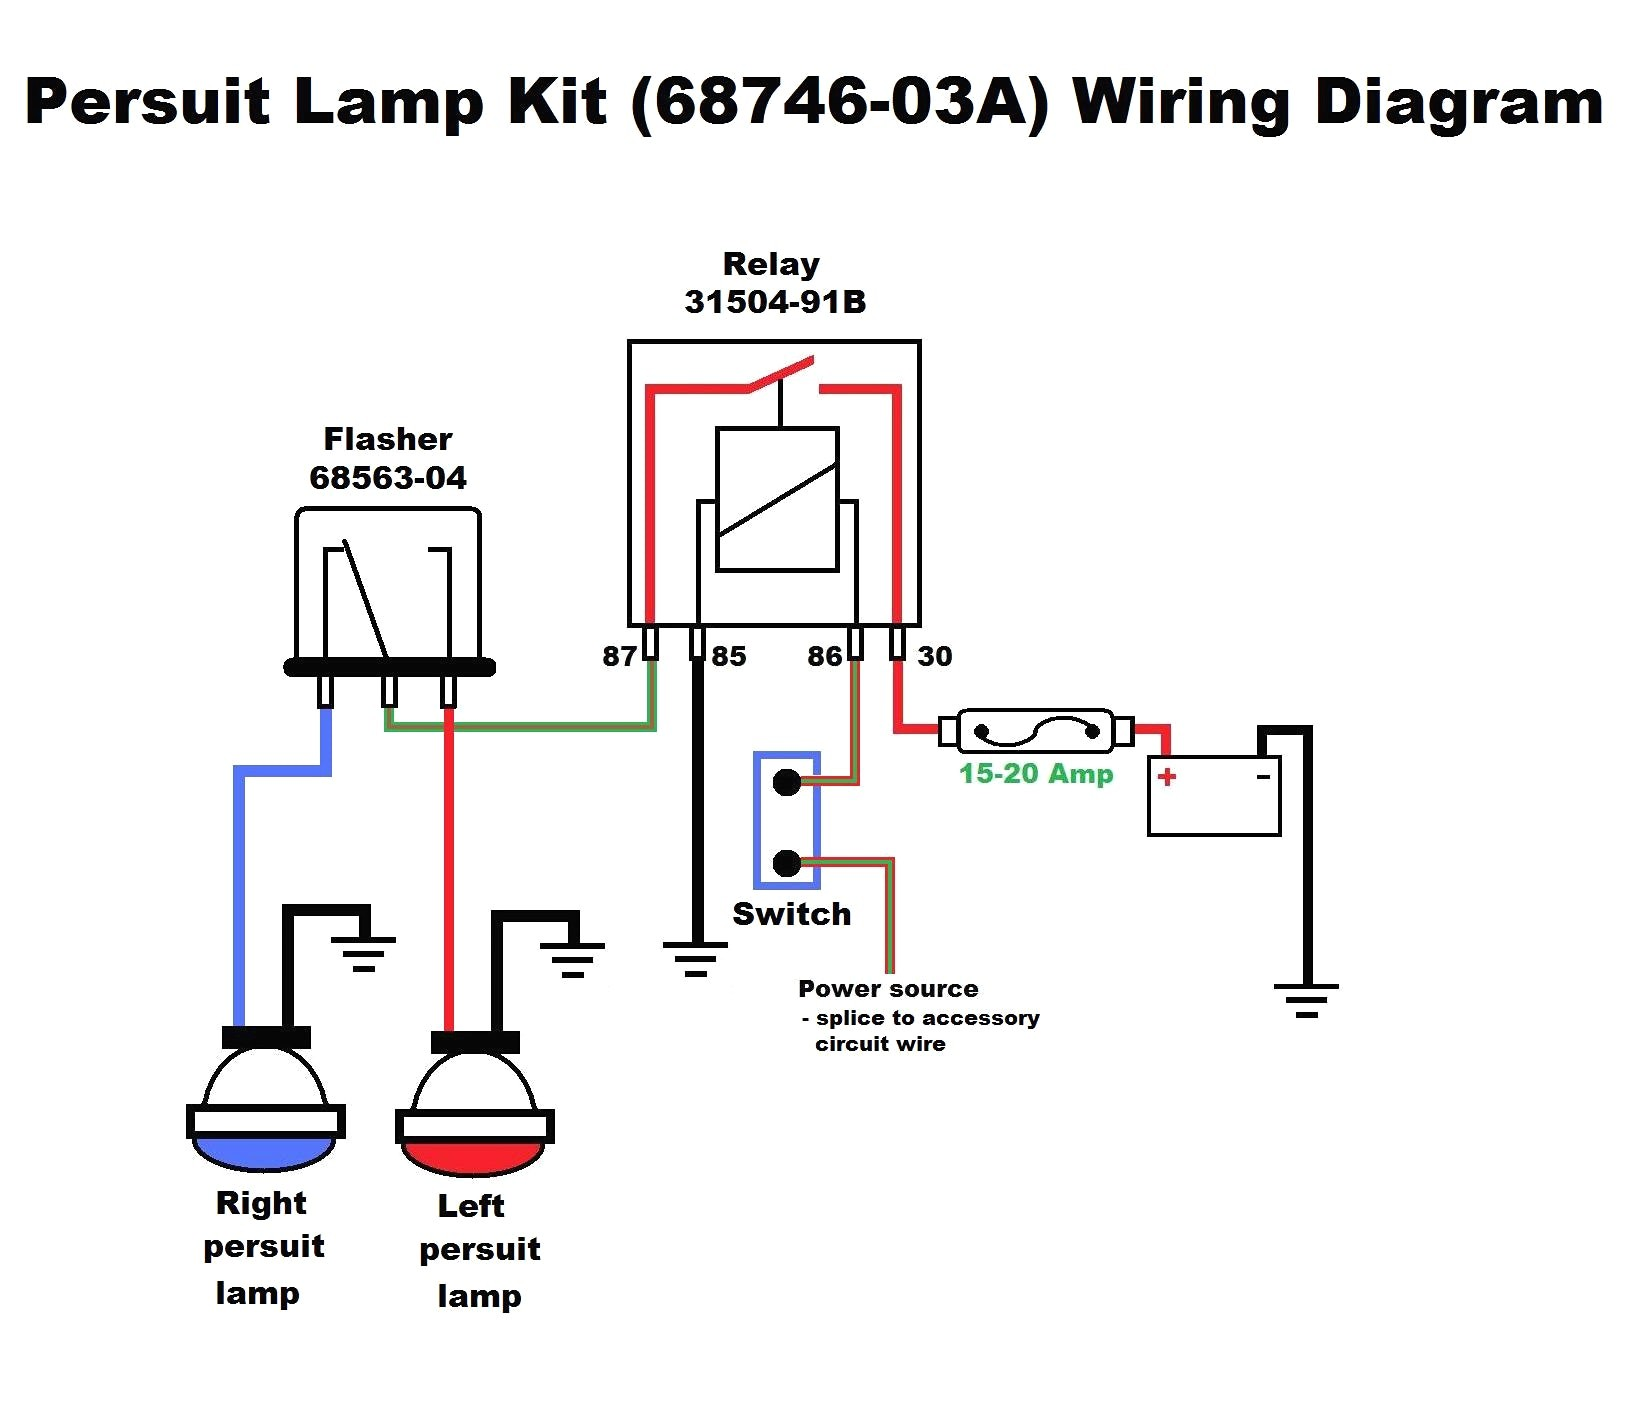 Turn Signal Flasher Schematic Wiring Library 1954 Farmall Super A International Wire Diagram For Lights Led 4 Way Flashers Relay Within Of